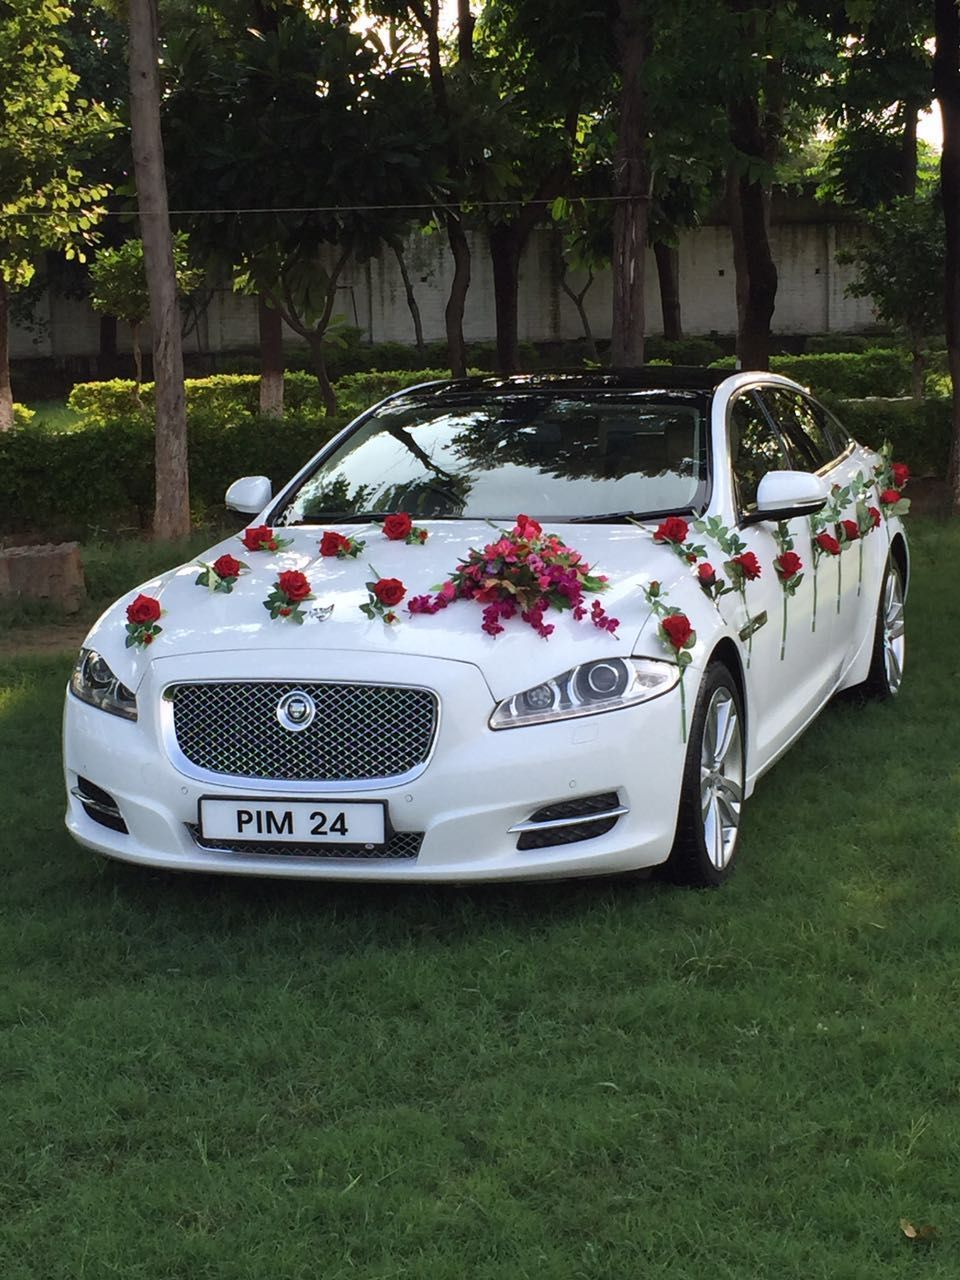 Www Weddingcarhir Car Rental Agency Delhi In 2020 Wedding Car Decorations Luxury Car Rental Luxury Car Hire